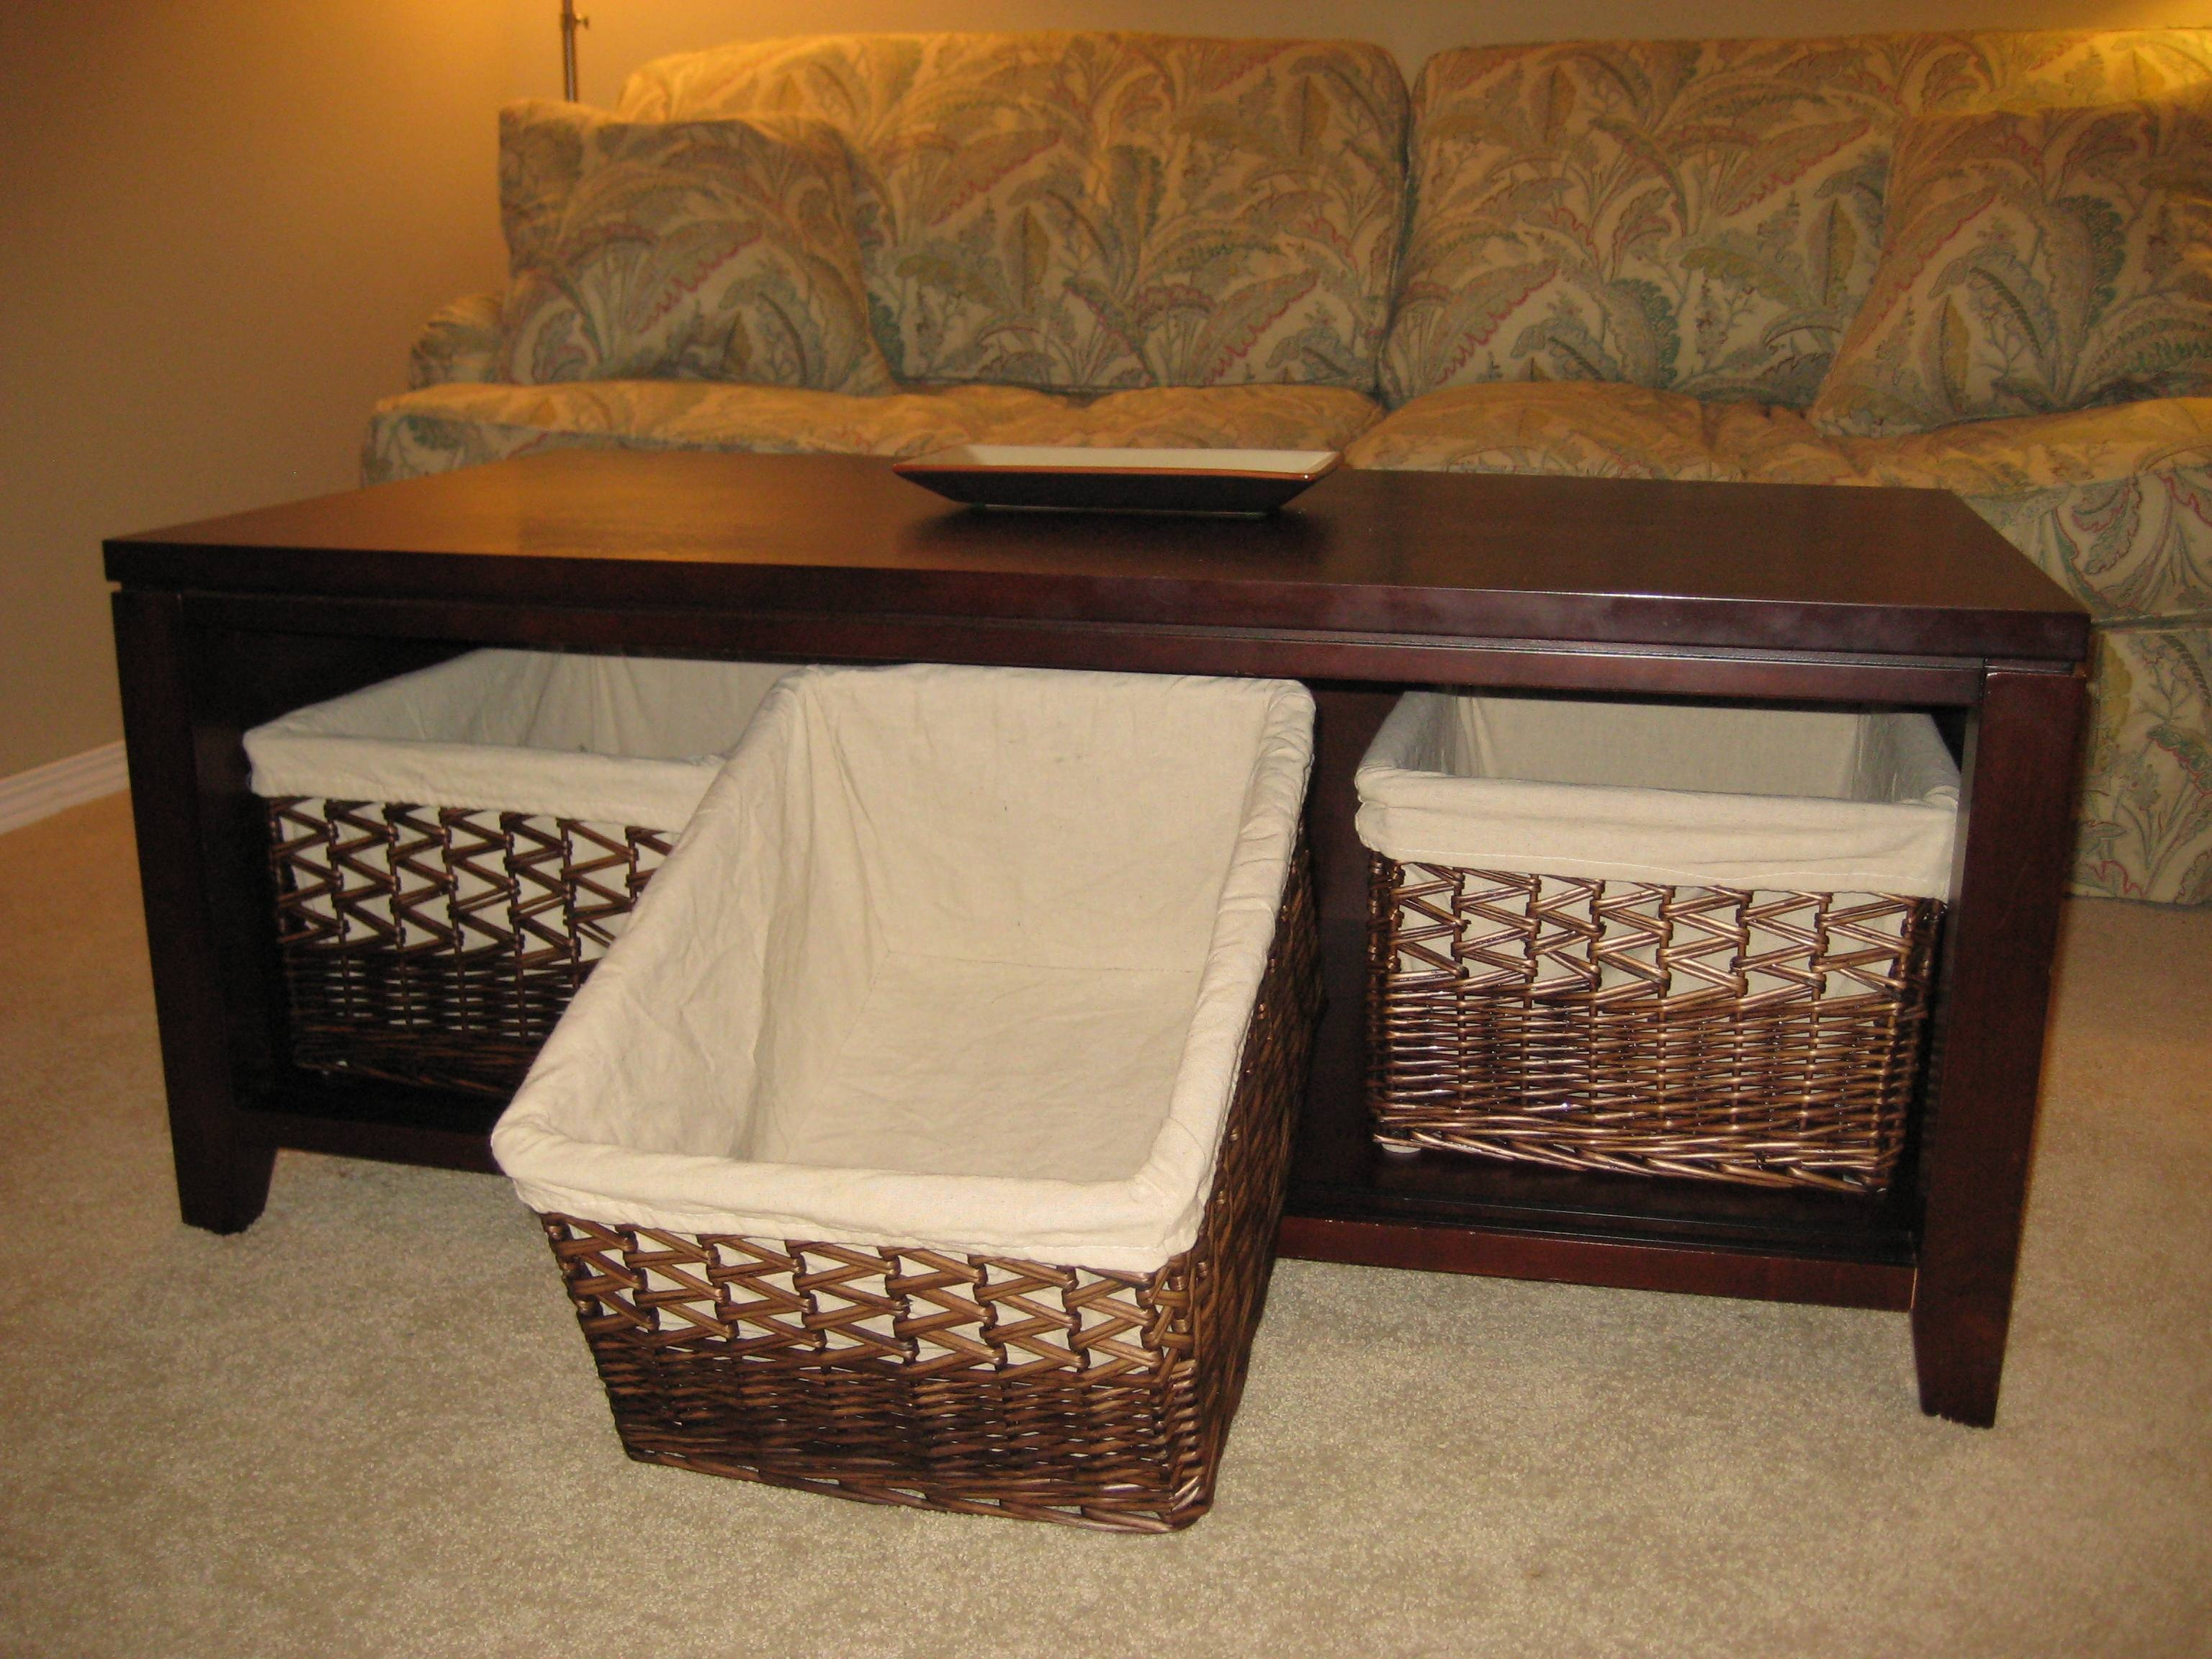 Union Square Wicker Basket Storage Black Coffee Table | Coffee for Coffee Table With Wicker Basket Storage (Image 23 of 30)